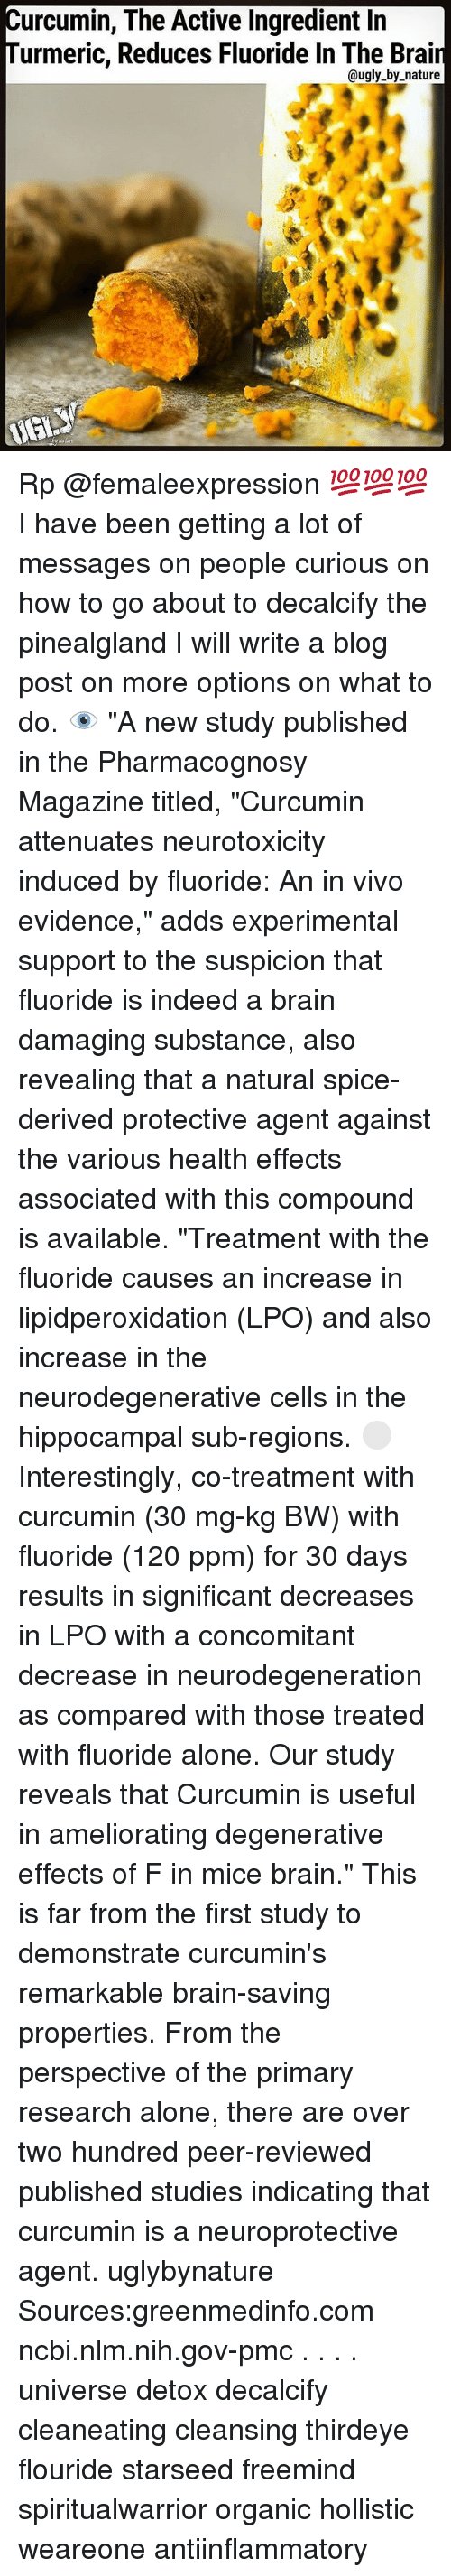 """Being Alone, Memes, and Ugly: urcumin, The Active Ingredient lin  urmeric, Reduces Fluoride In The Brai  @ugly by nature Rp @femaleexpression 💯💯💯 I have been getting a lot of messages on people curious on how to go about to decalcify the pinealgland I will write a blog post on more options on what to do. 👁 """"A new study published in the Pharmacognosy Magazine titled, """"Curcumin attenuates neurotoxicity induced by fluoride: An in vivo evidence,"""" adds experimental support to the suspicion that fluoride is indeed a brain damaging substance, also revealing that a natural spice-derived protective agent against the various health effects associated with this compound is available. """"Treatment with the fluoride causes an increase in lipidperoxidation (LPO) and also increase in the neurodegenerative cells in the hippocampal sub-regions. ⚪️ Interestingly, co-treatment with curcumin (30 mg-kg BW) with fluoride (120 ppm) for 30 days results in significant decreases in LPO with a concomitant decrease in neurodegeneration as compared with those treated with fluoride alone. Our study reveals that Curcumin is useful in ameliorating degenerative effects of F in mice brain."""" This is far from the first study to demonstrate curcumin's remarkable brain-saving properties. From the perspective of the primary research alone, there are over two hundred peer-reviewed published studies indicating that curcumin is a neuroprotective agent. uglybynature Sources:greenmedinfo.com ncbi.nlm.nih.gov-pmc . . . . universe detox decalcify cleaneating cleansing thirdeye flouride starseed freemind spiritualwarrior organic hollistic weareone antiinflammatory"""